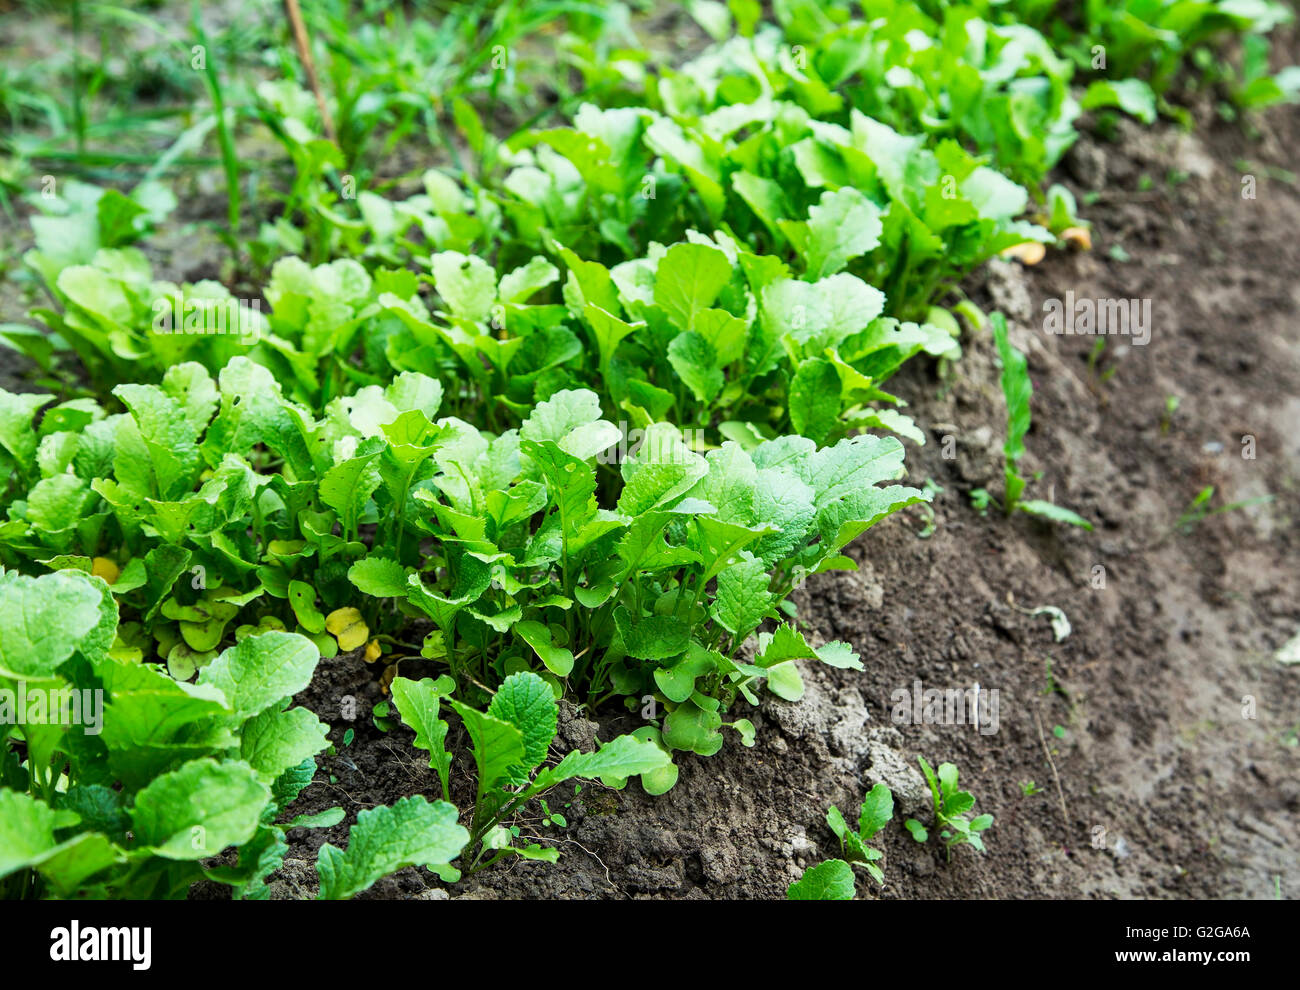 Bio organic radish seedling growing in the vegetable garden - Stock Image